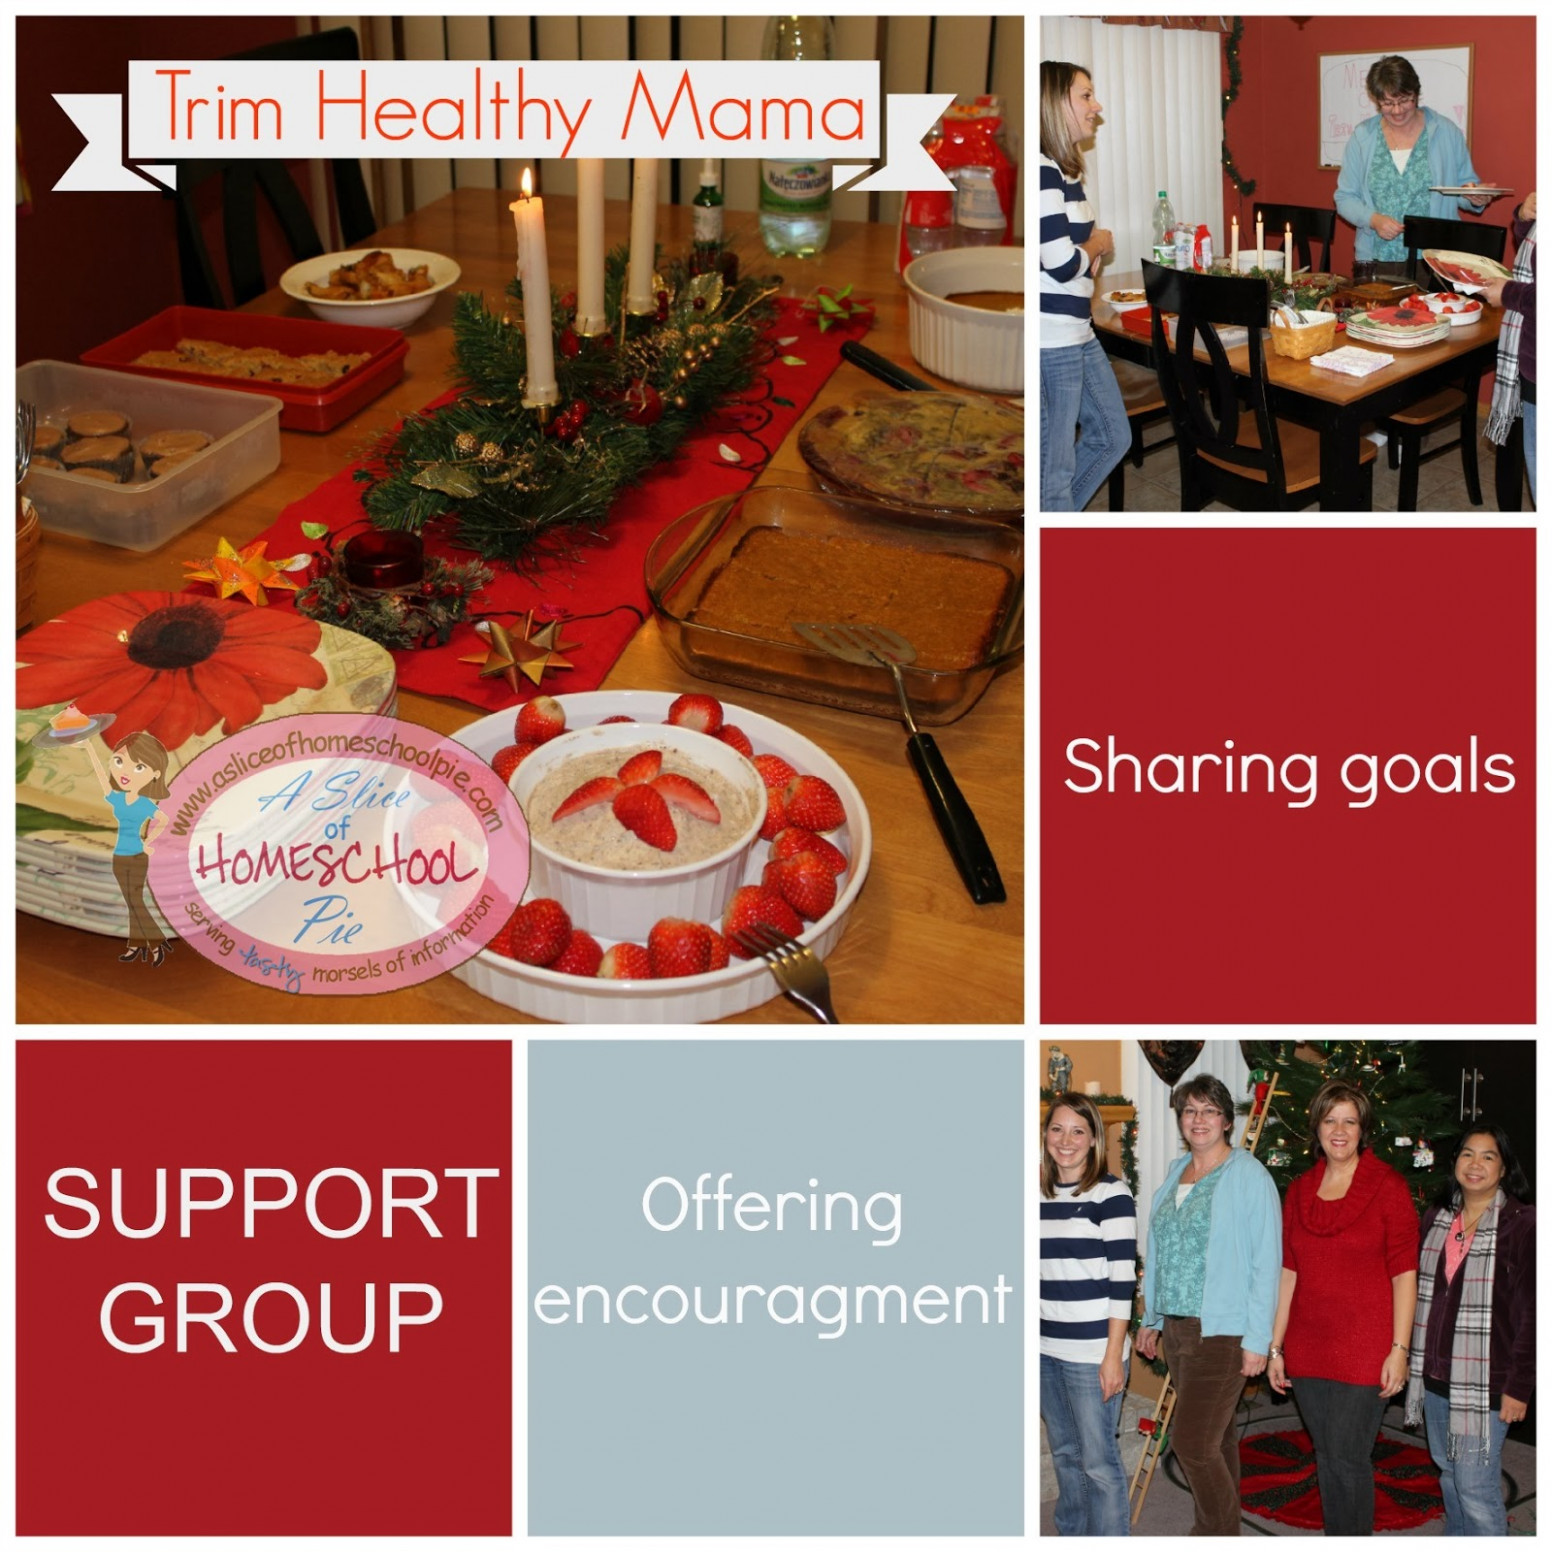 A Slice Of Homeschool Pie: Trim Healthy Mama Support Group ..